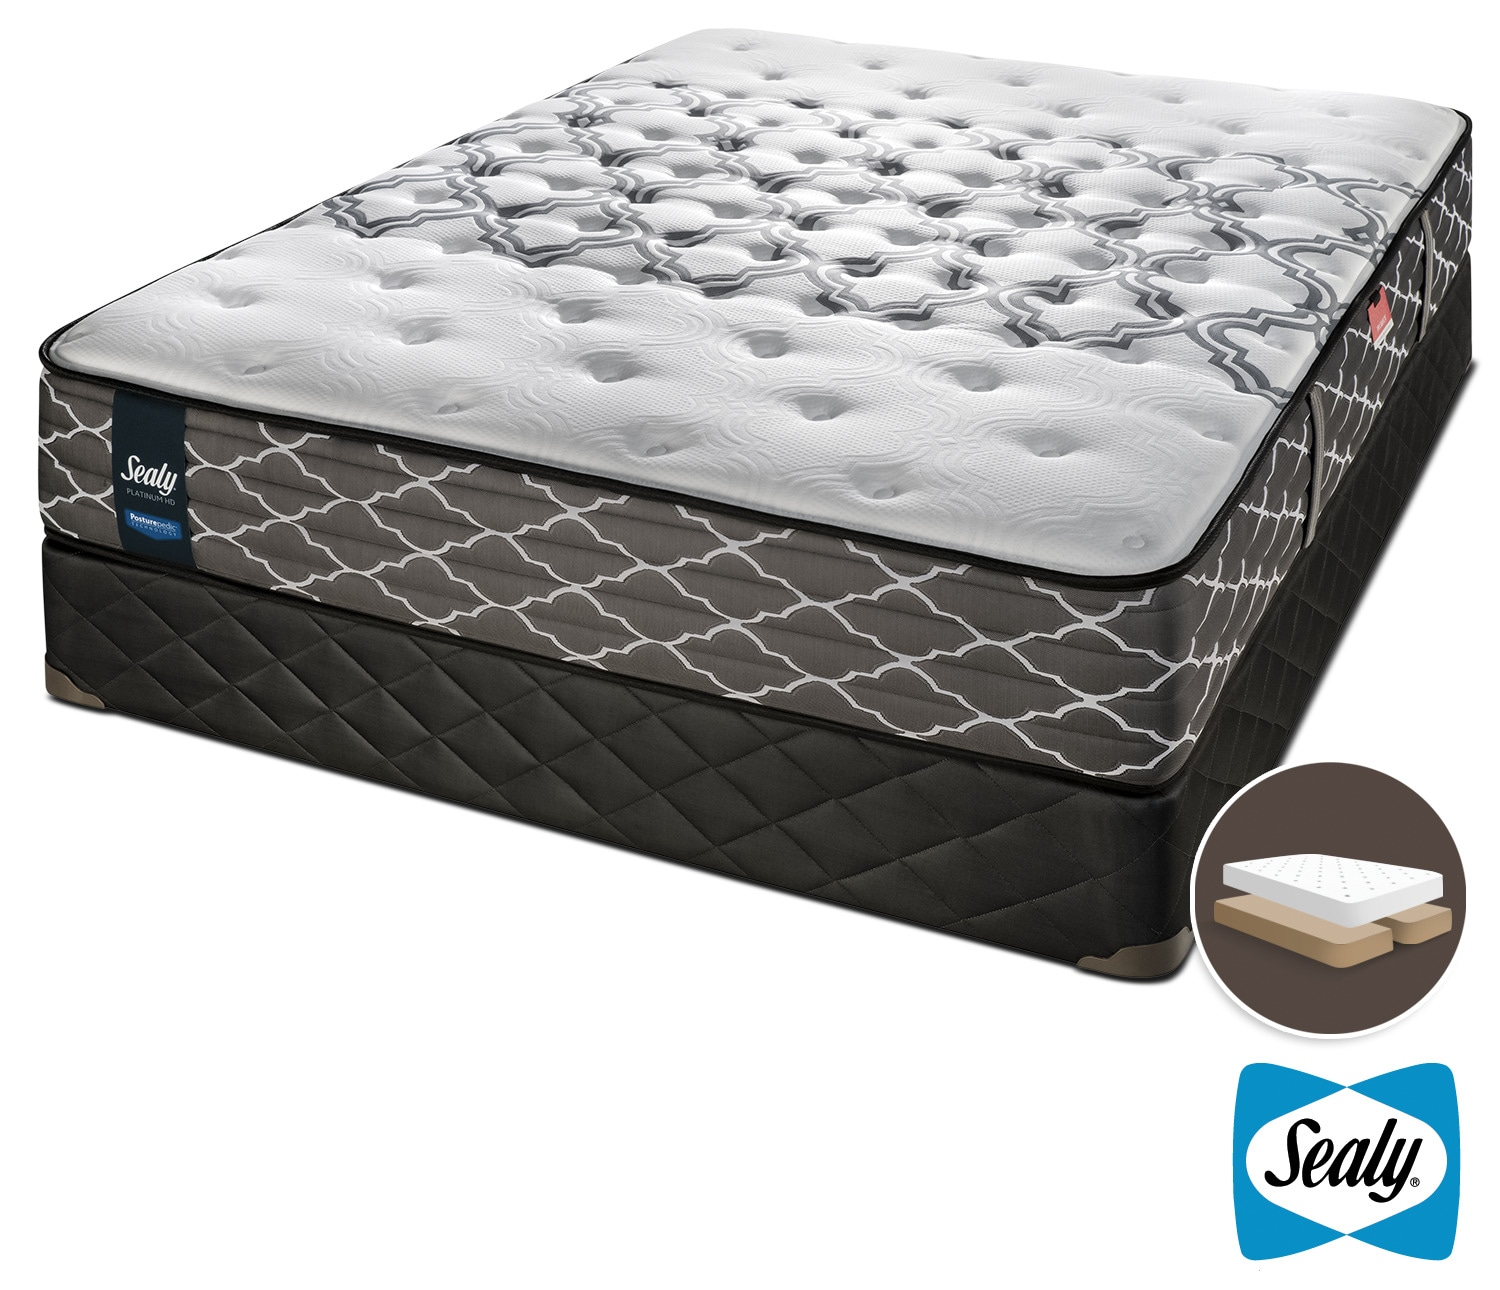 Sealy Late Night Hybrid Extra Firm King Mattress and Split Boxspring Set